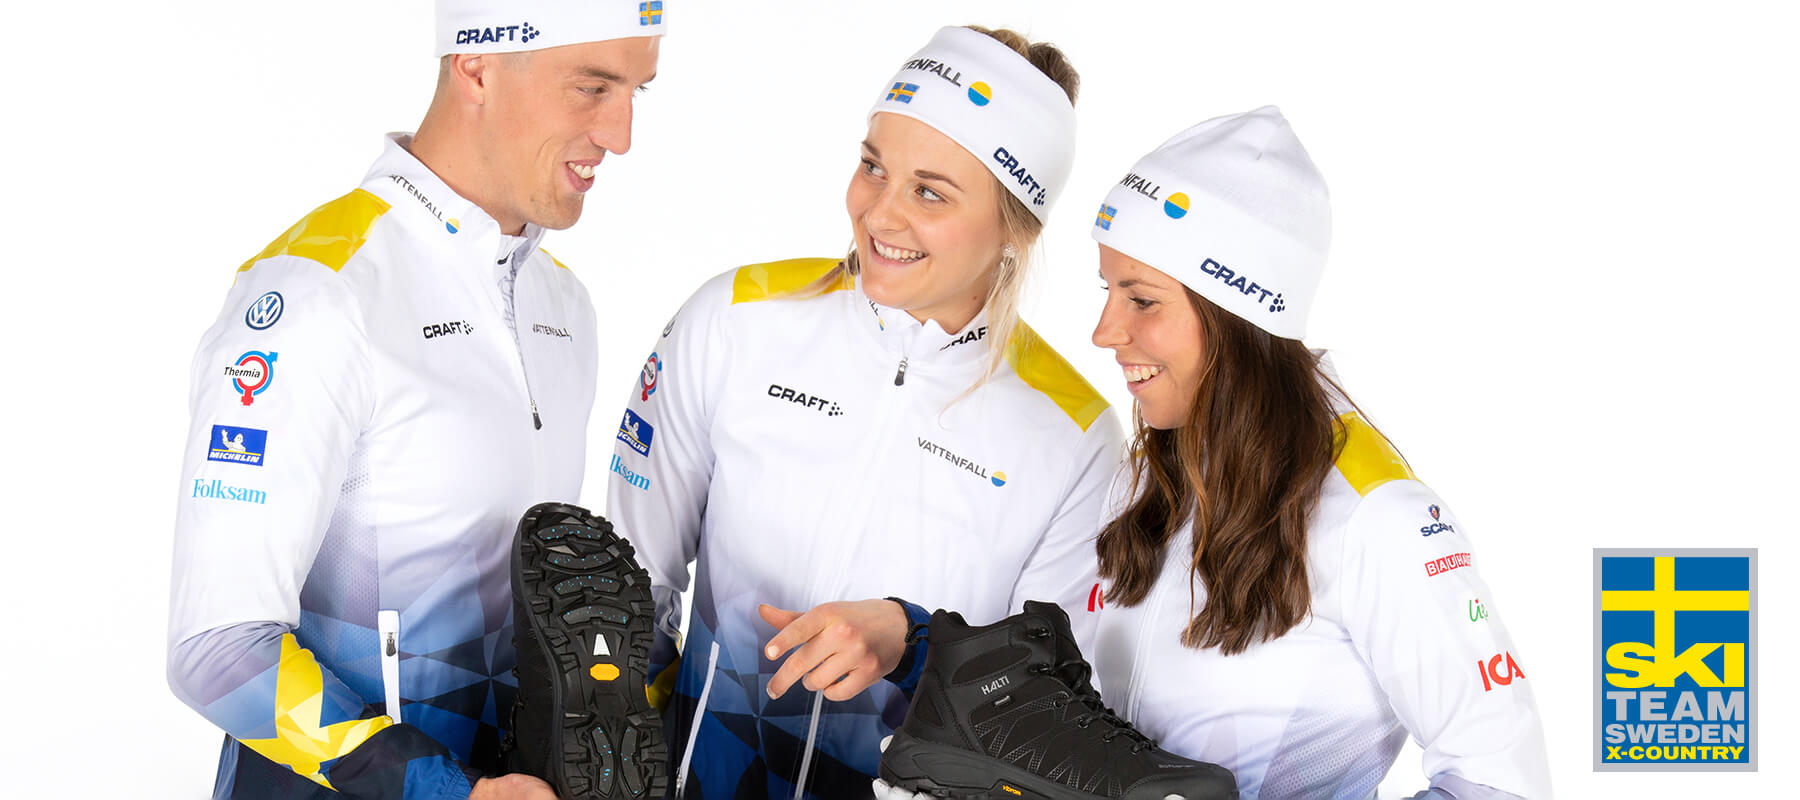 The official partner for the X-Country Ski Team Sweden